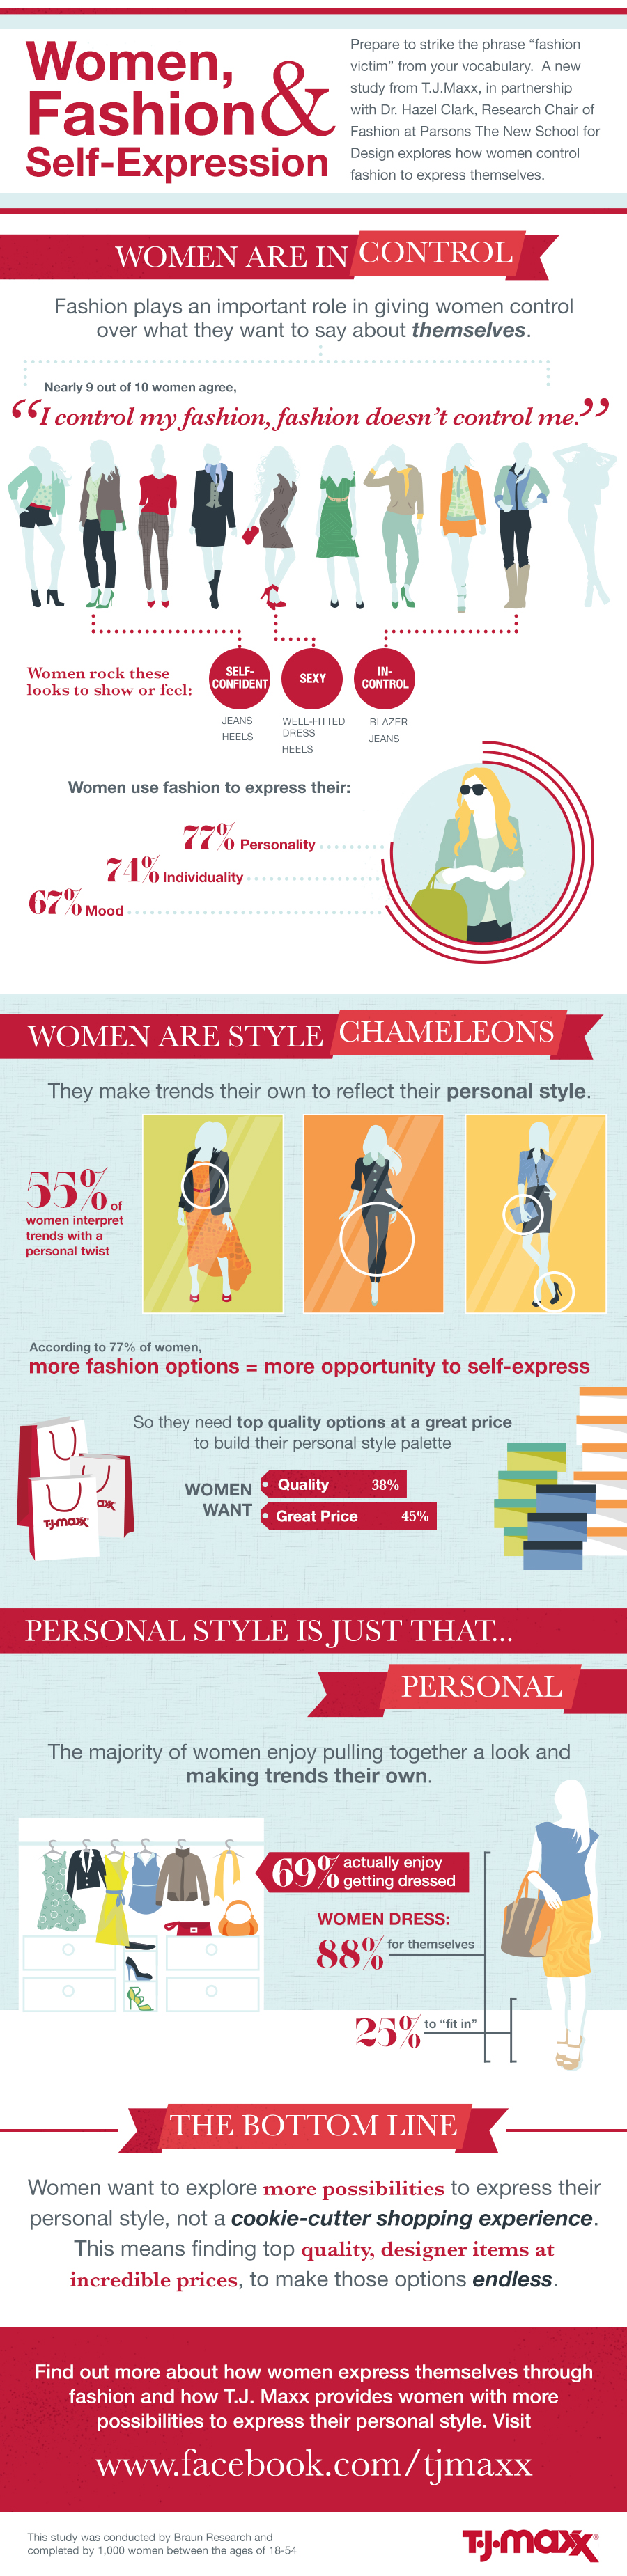 Women, Fashion And Self-Expression